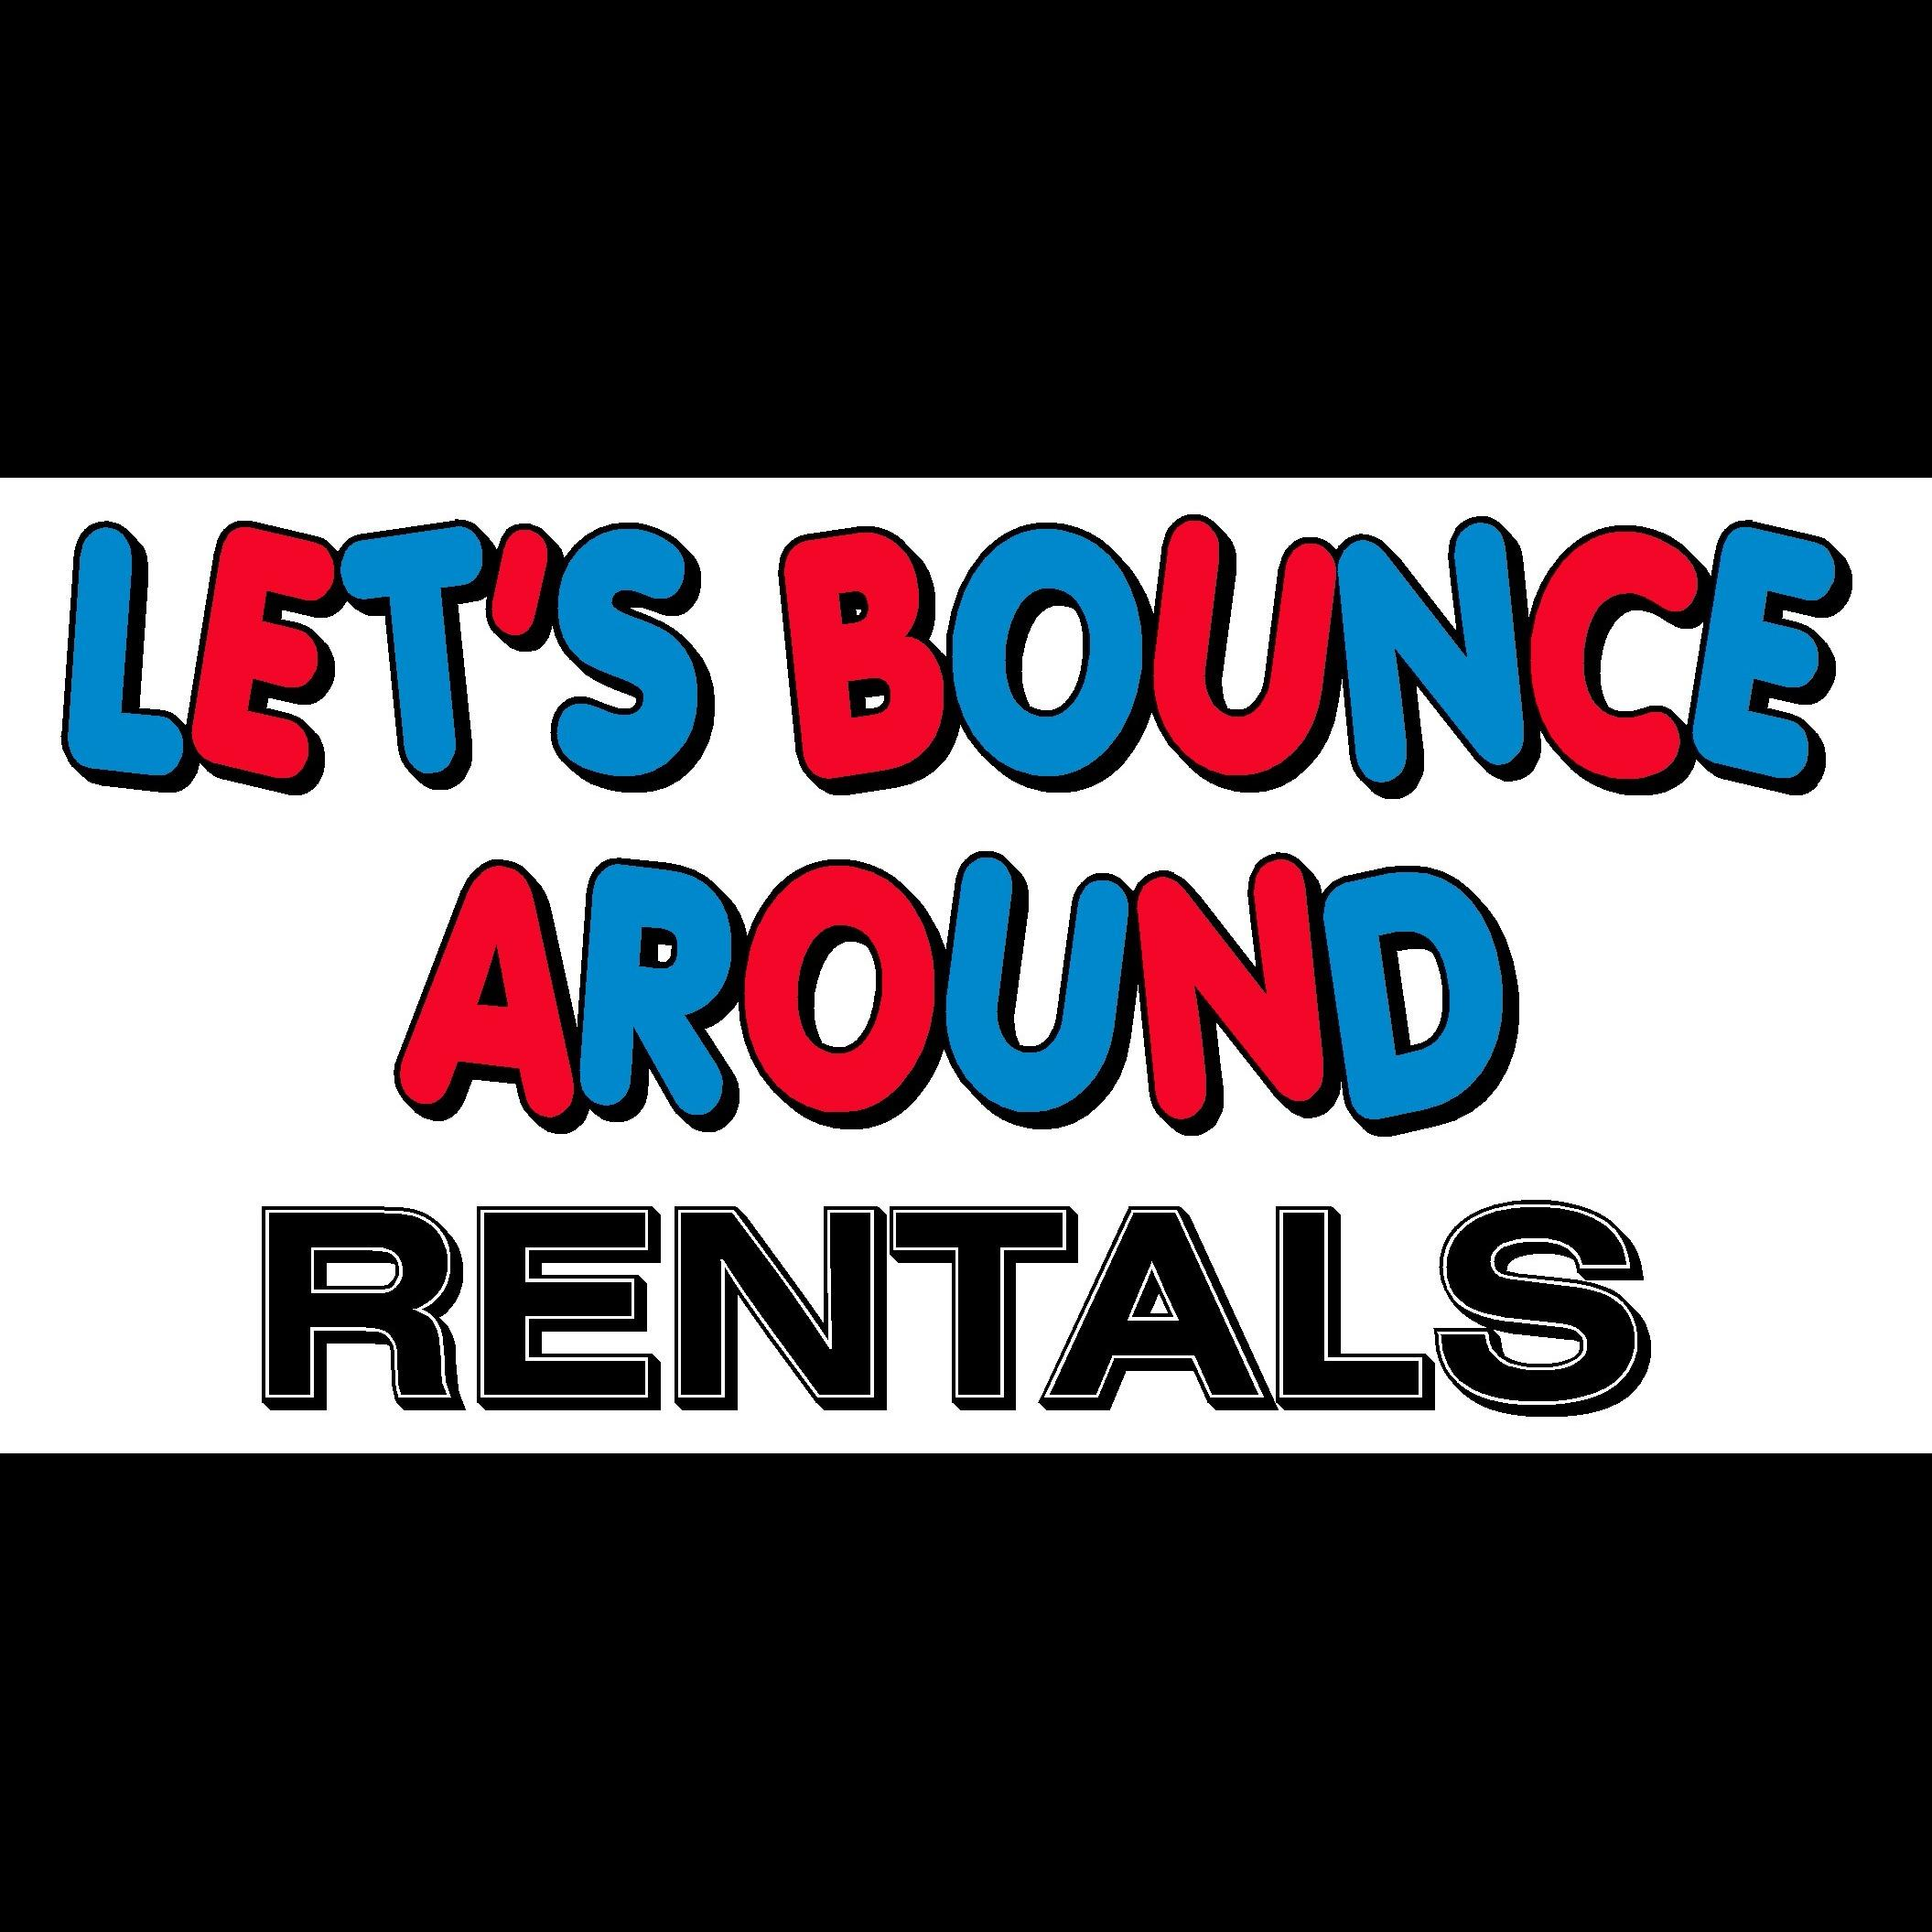 Let's Bounce Around Rentals - Coopersburg, PA 18036 - (610)882-5867   ShowMeLocal.com